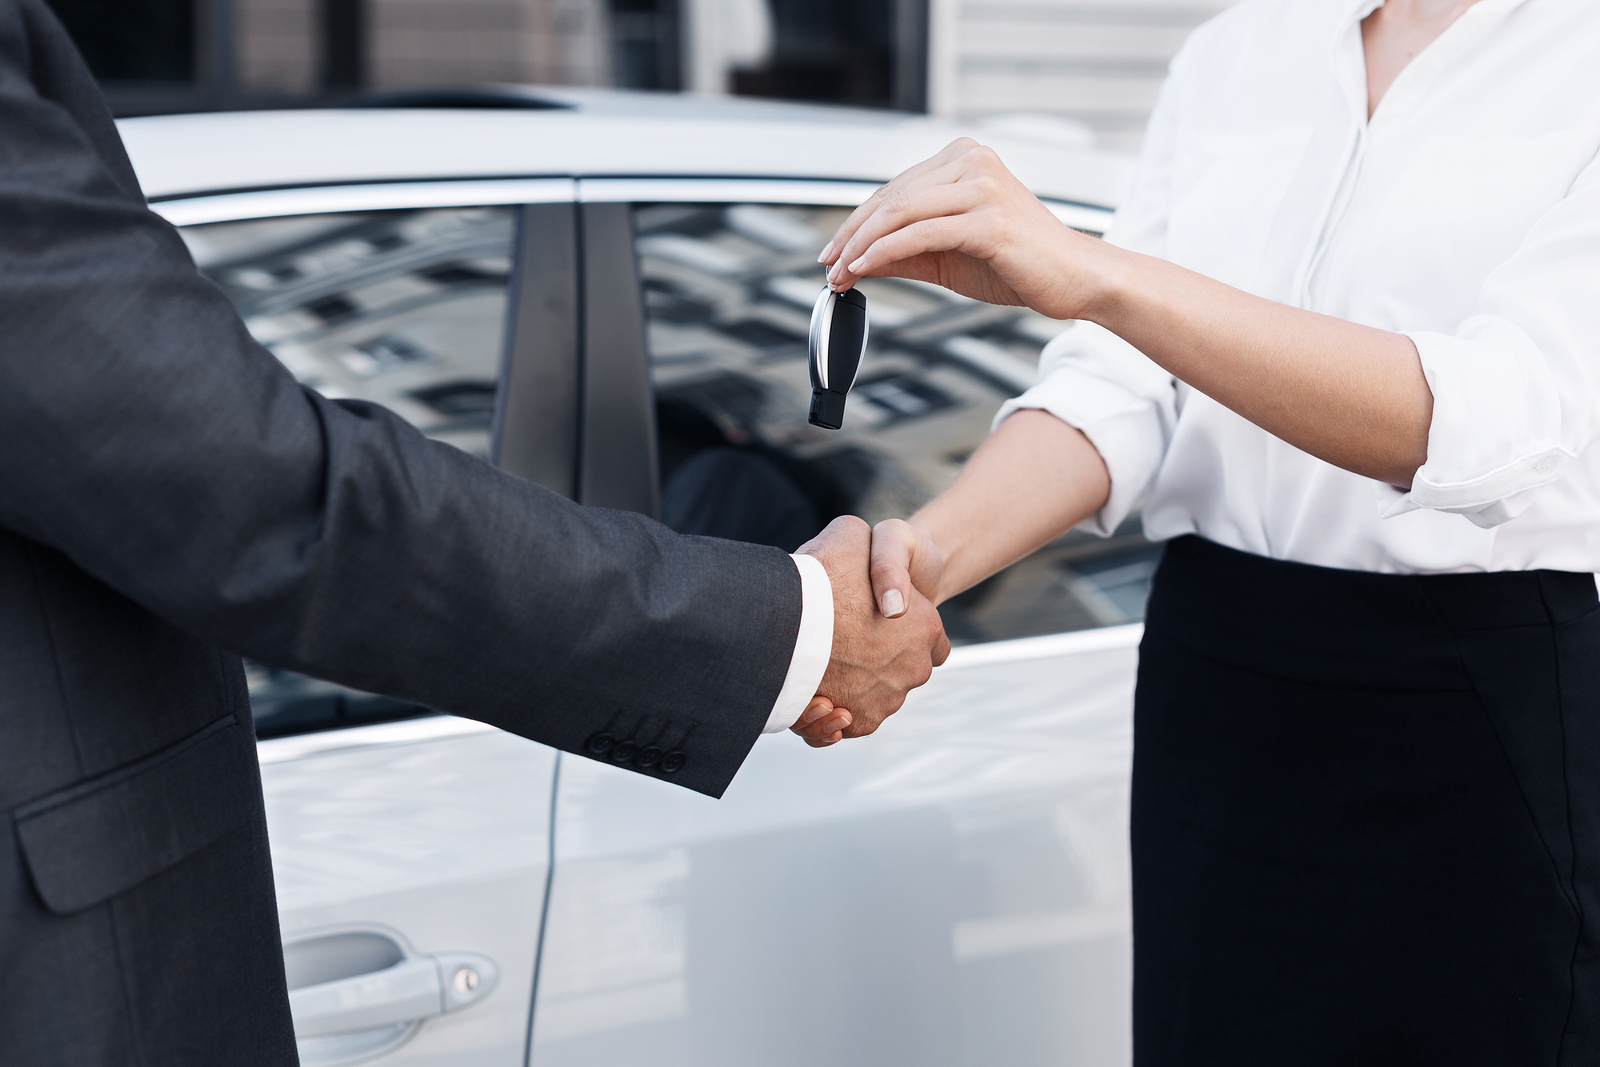 man and woman shaking hands and woman is handing man keys to a new vehicle